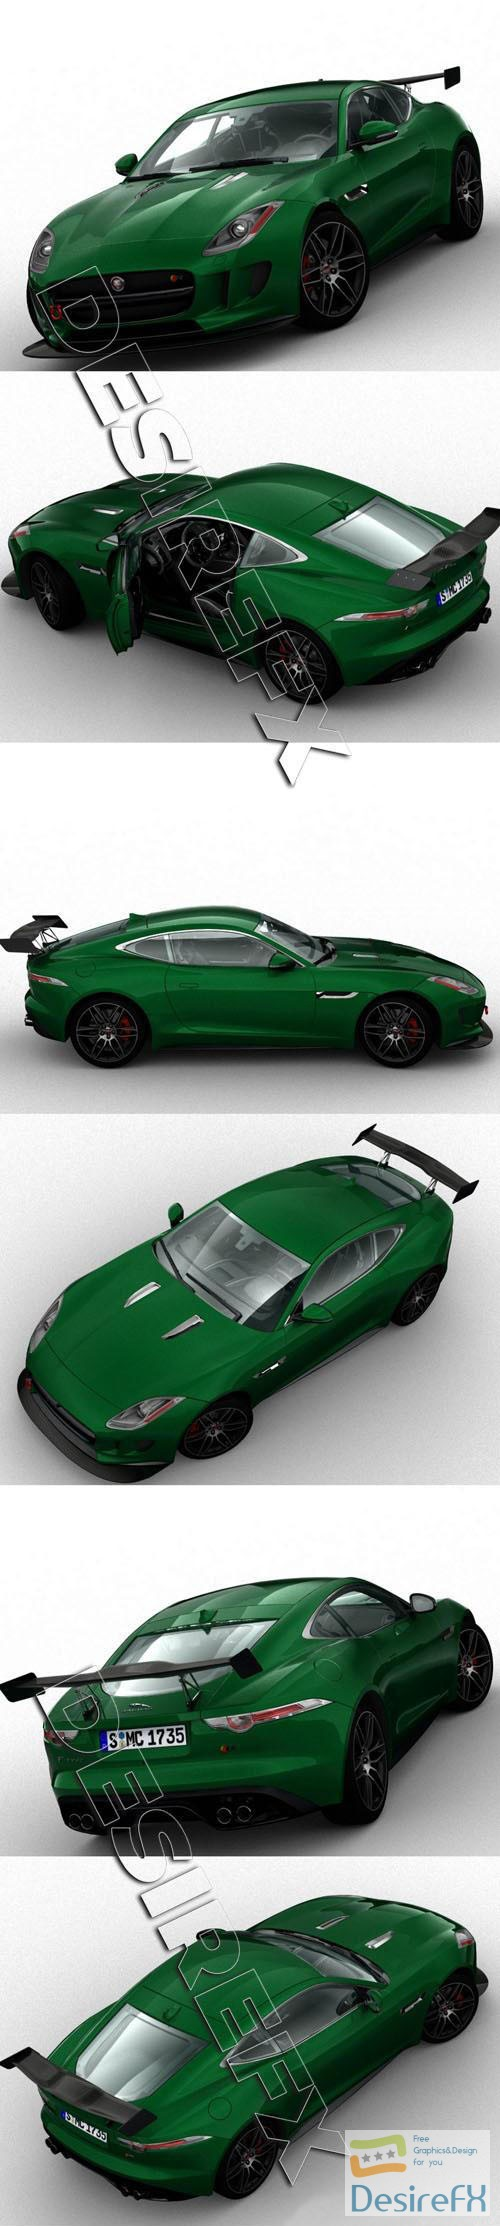 3d-models - Jaguar F-Type Fast 8 3D Model